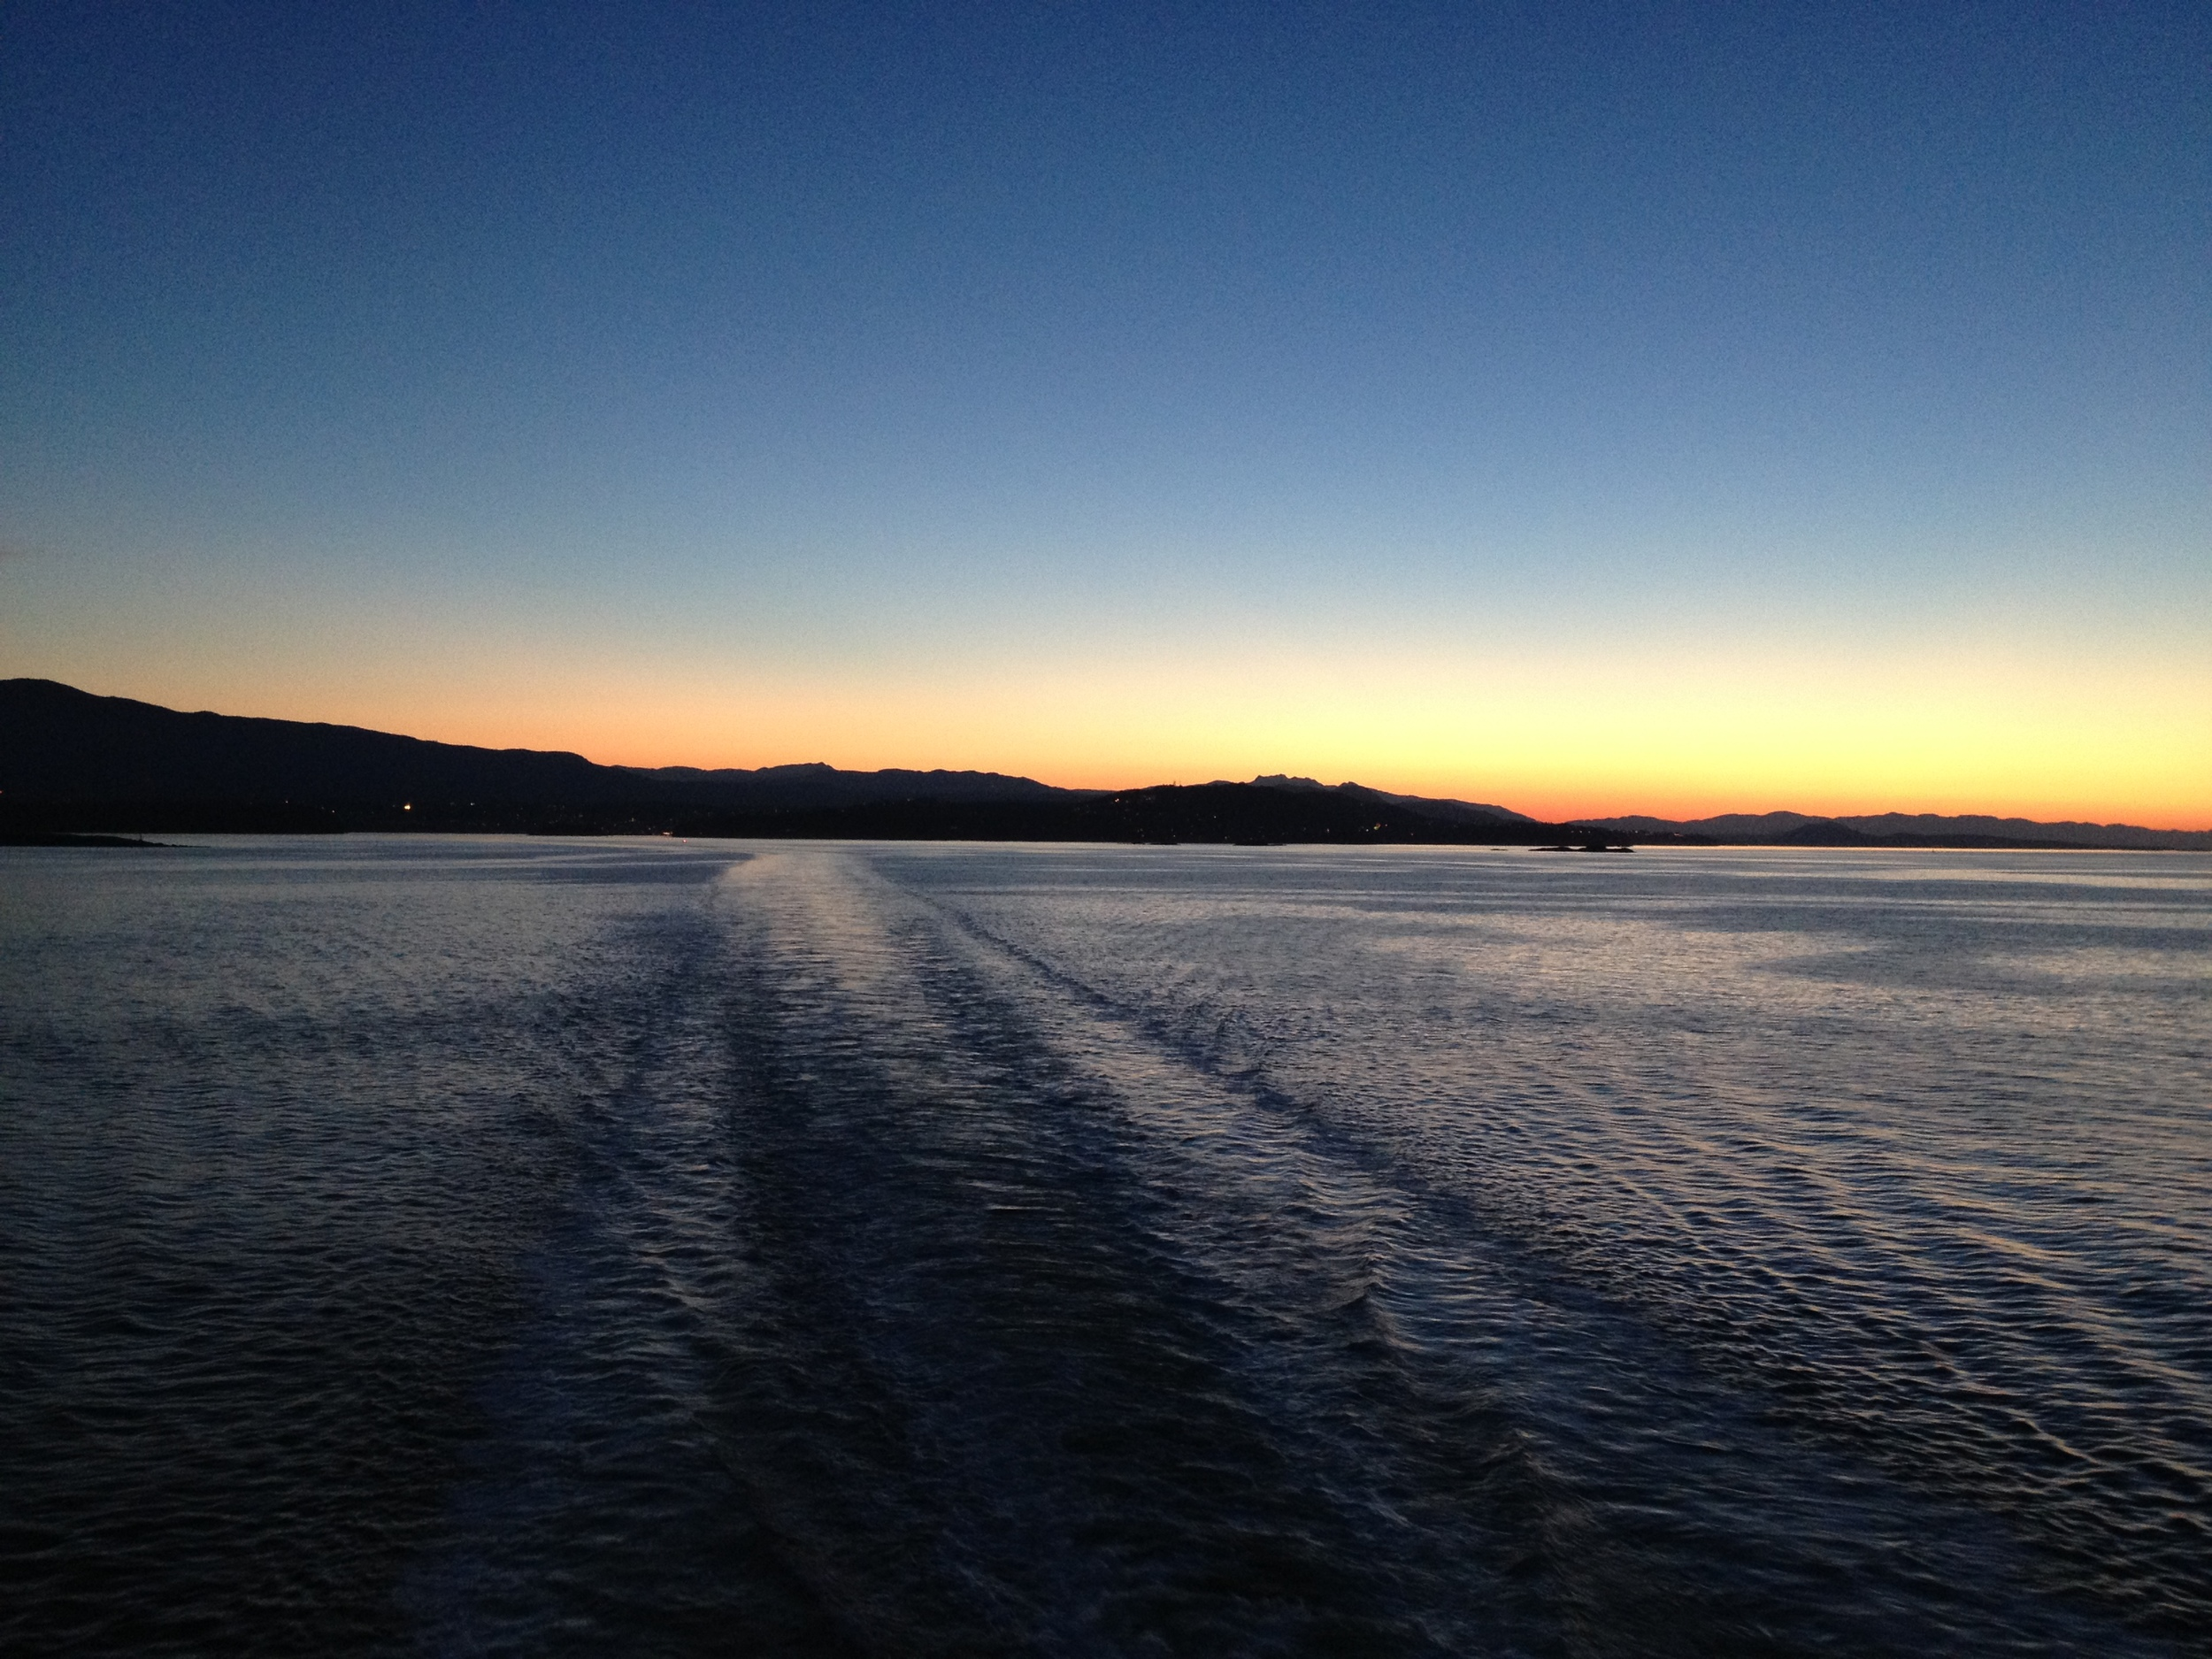 Until next time Vancouver Island!